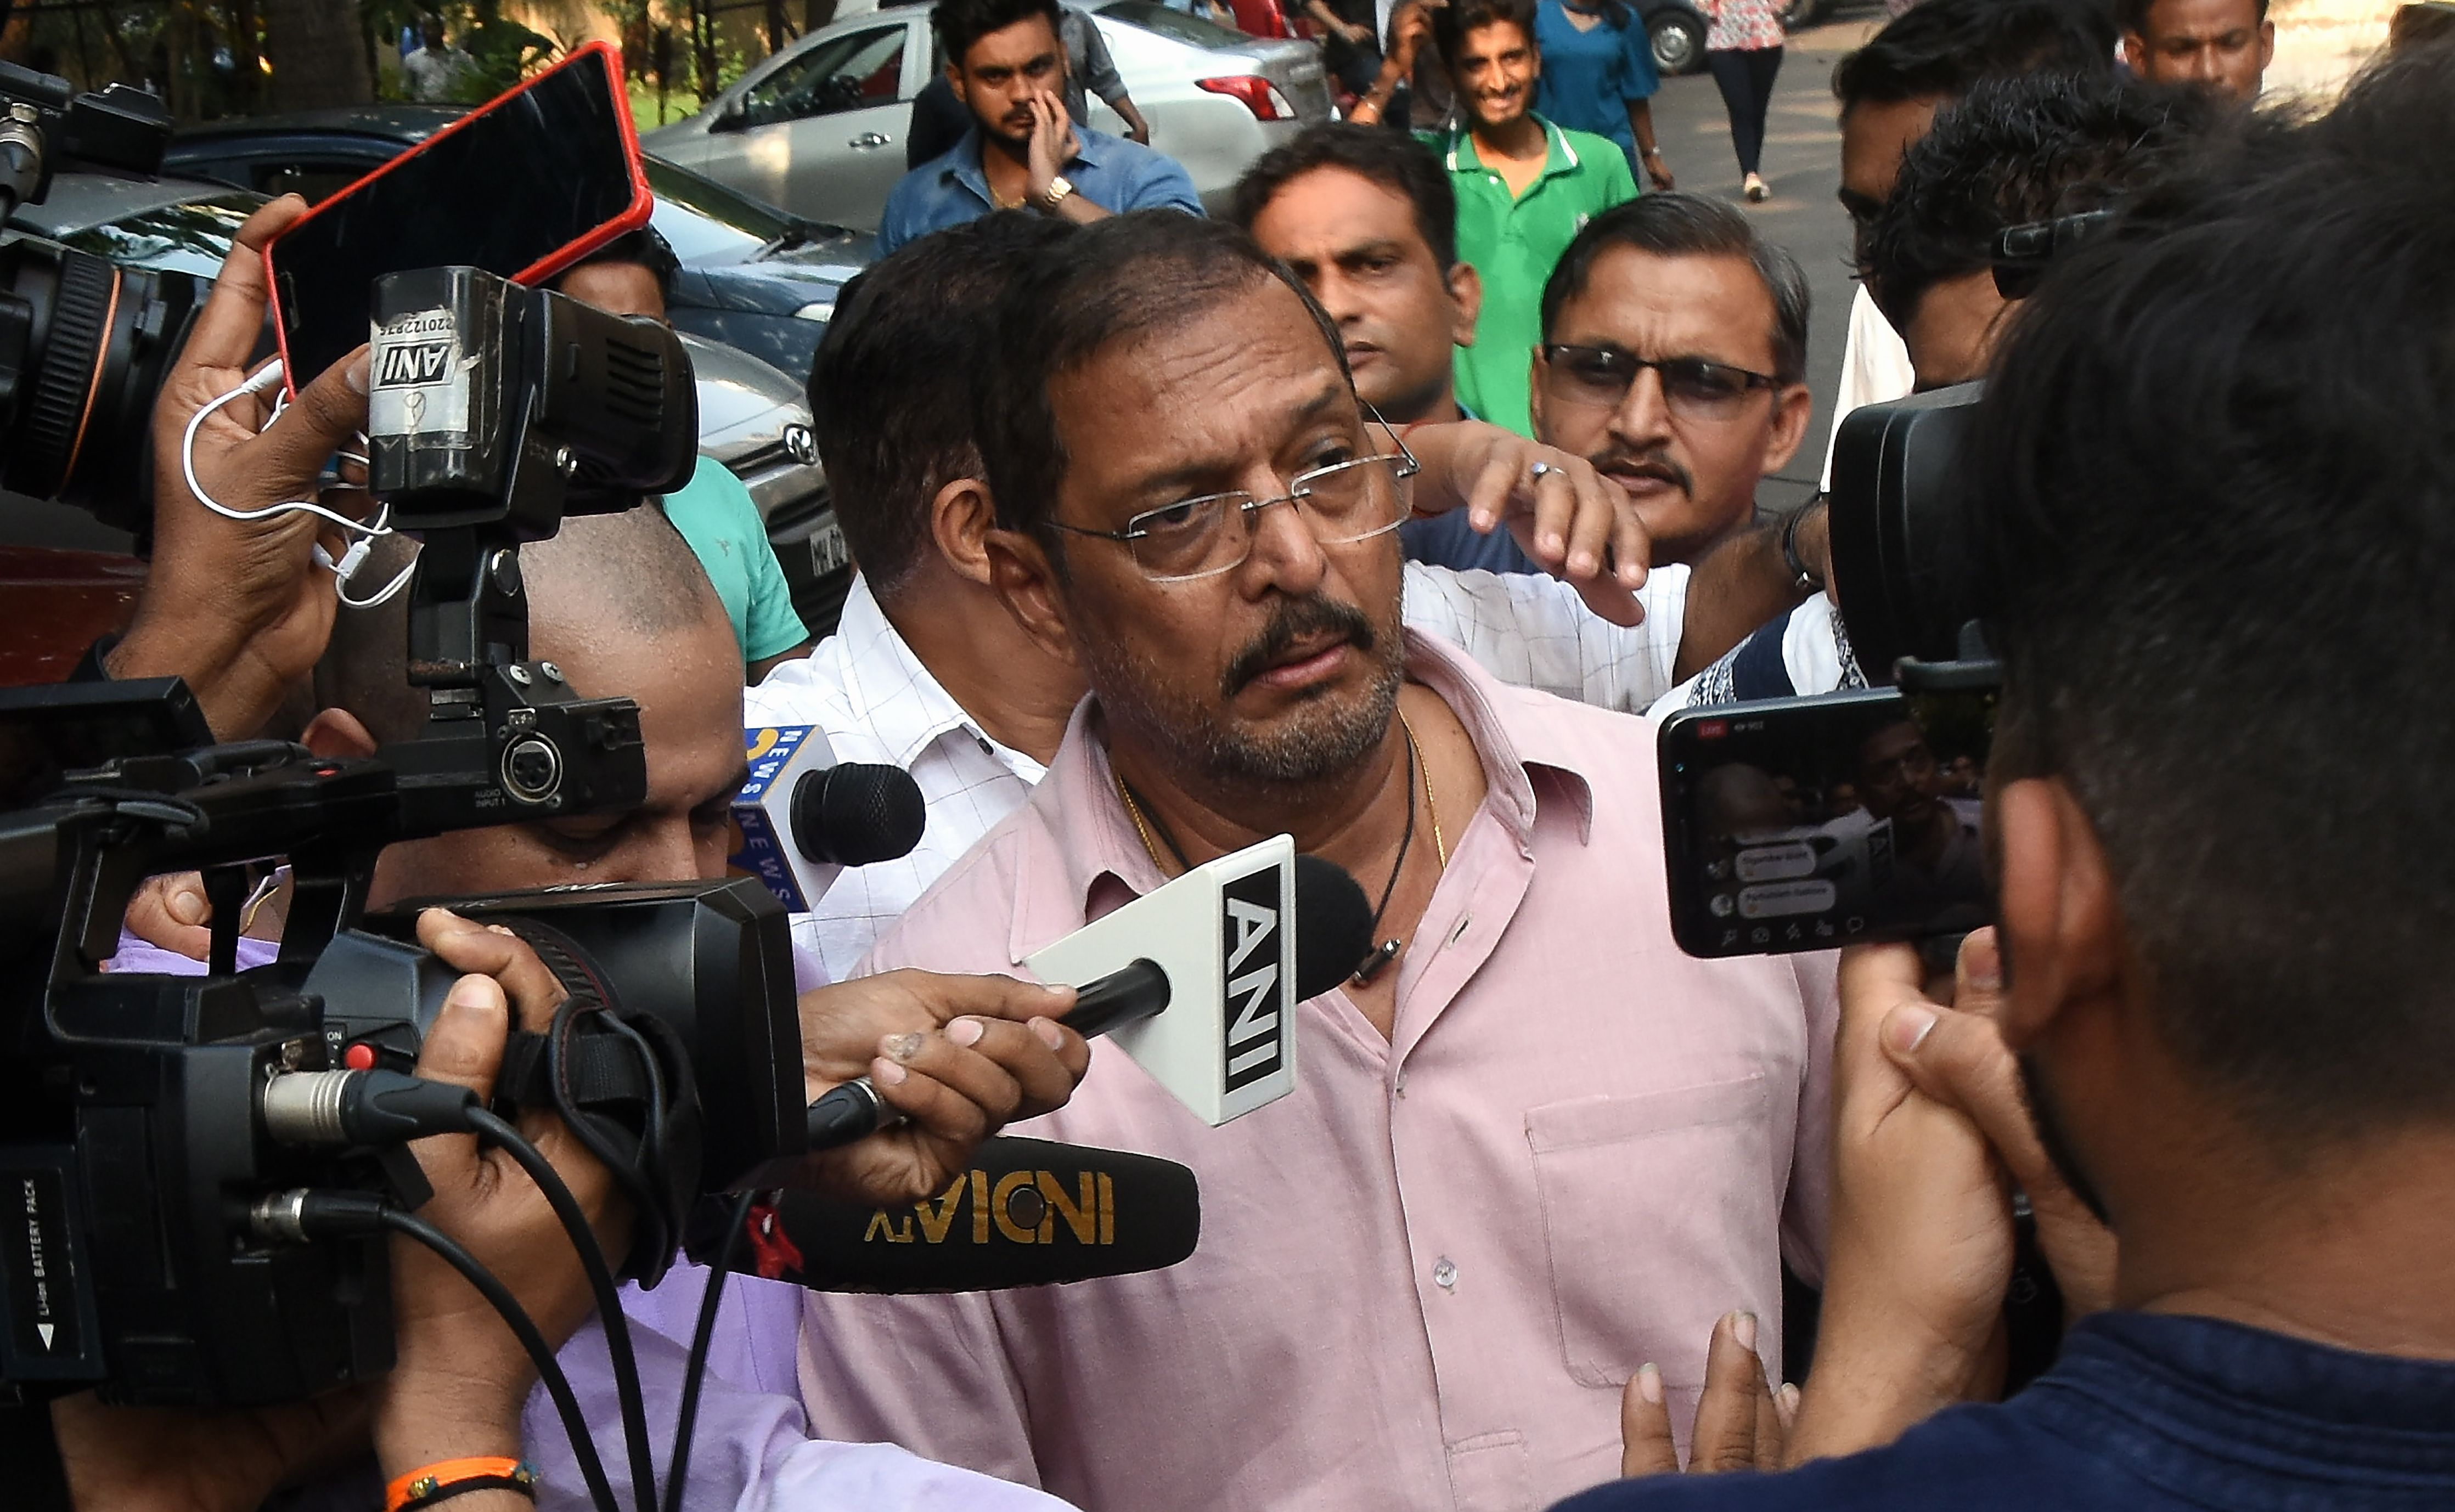 Indian Bollywood actor Nana Patekar is mobbed by the media as he leaves after making a statement outside his home in Mumbai on October 8, 2018. Actress Tanushree Dutta, whose recent public account of alleged sexual harassment by Patekar has sparked an outpouring of similar #MeToo accounts across the country, has filed a formal complaint.